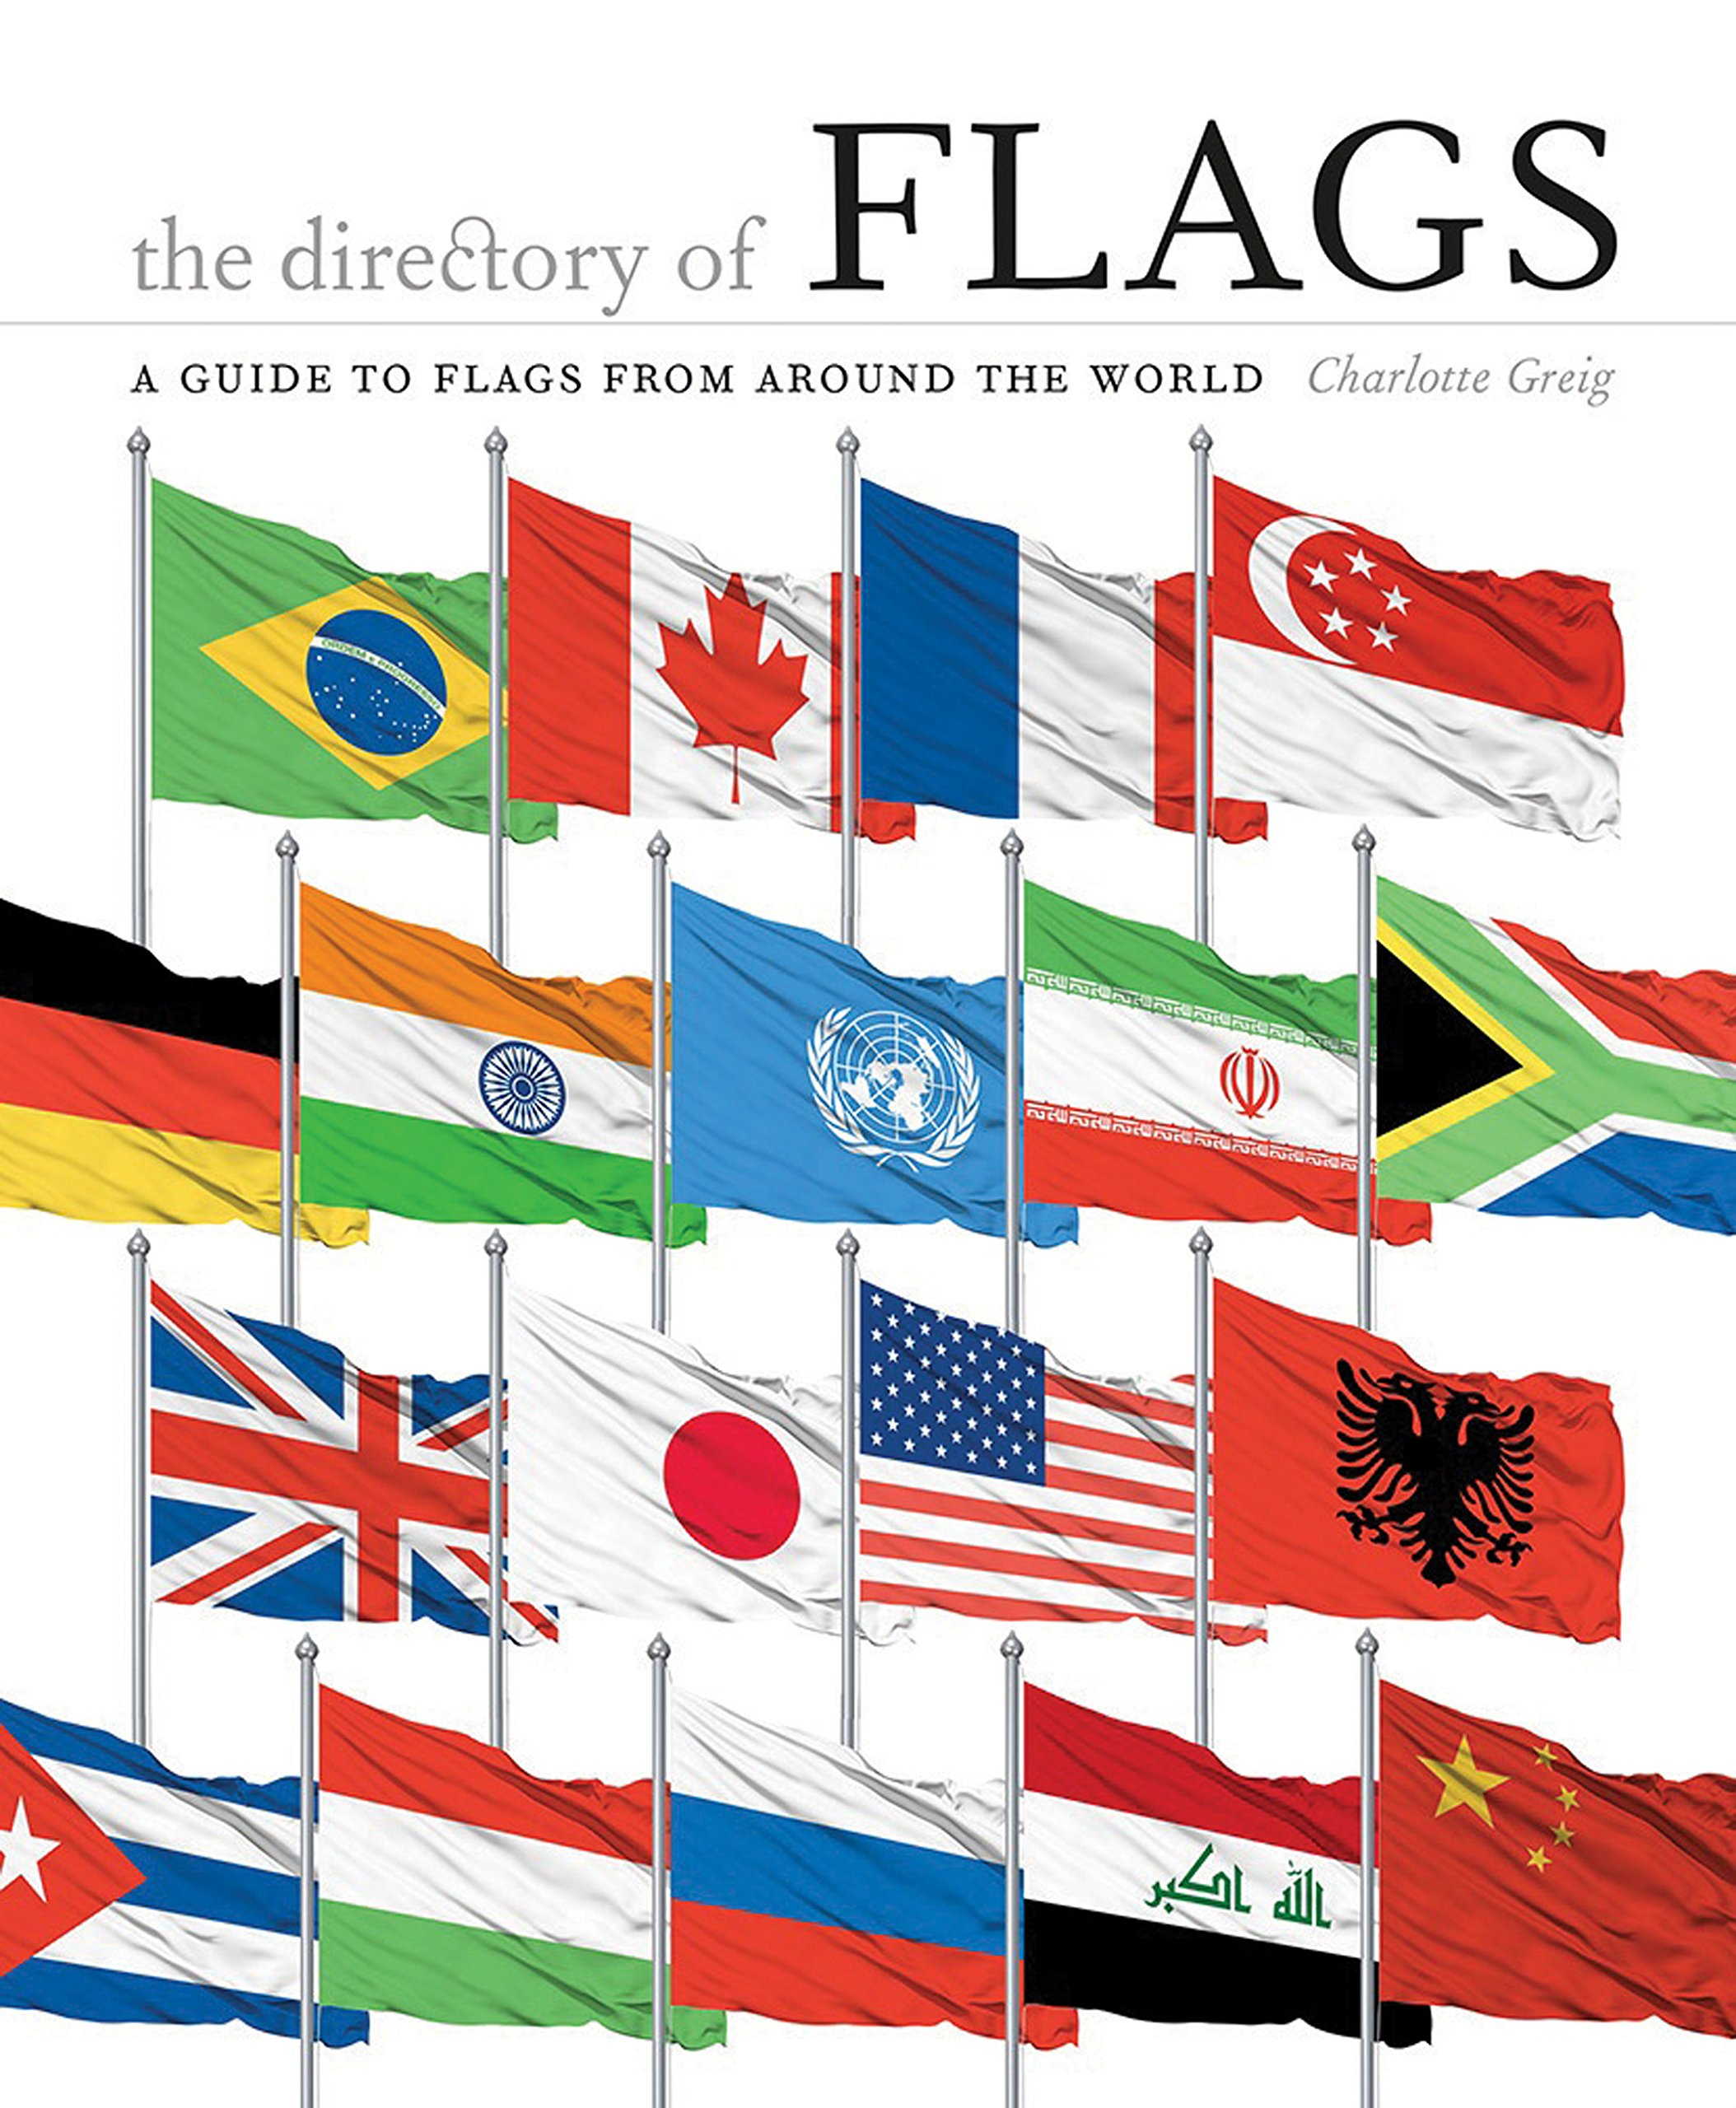 The Directory of Flags: A guide to flags from around the world Hardcover – 1 Sep 2015 Charlotte Greig Ivy Press 1782402810 Directories